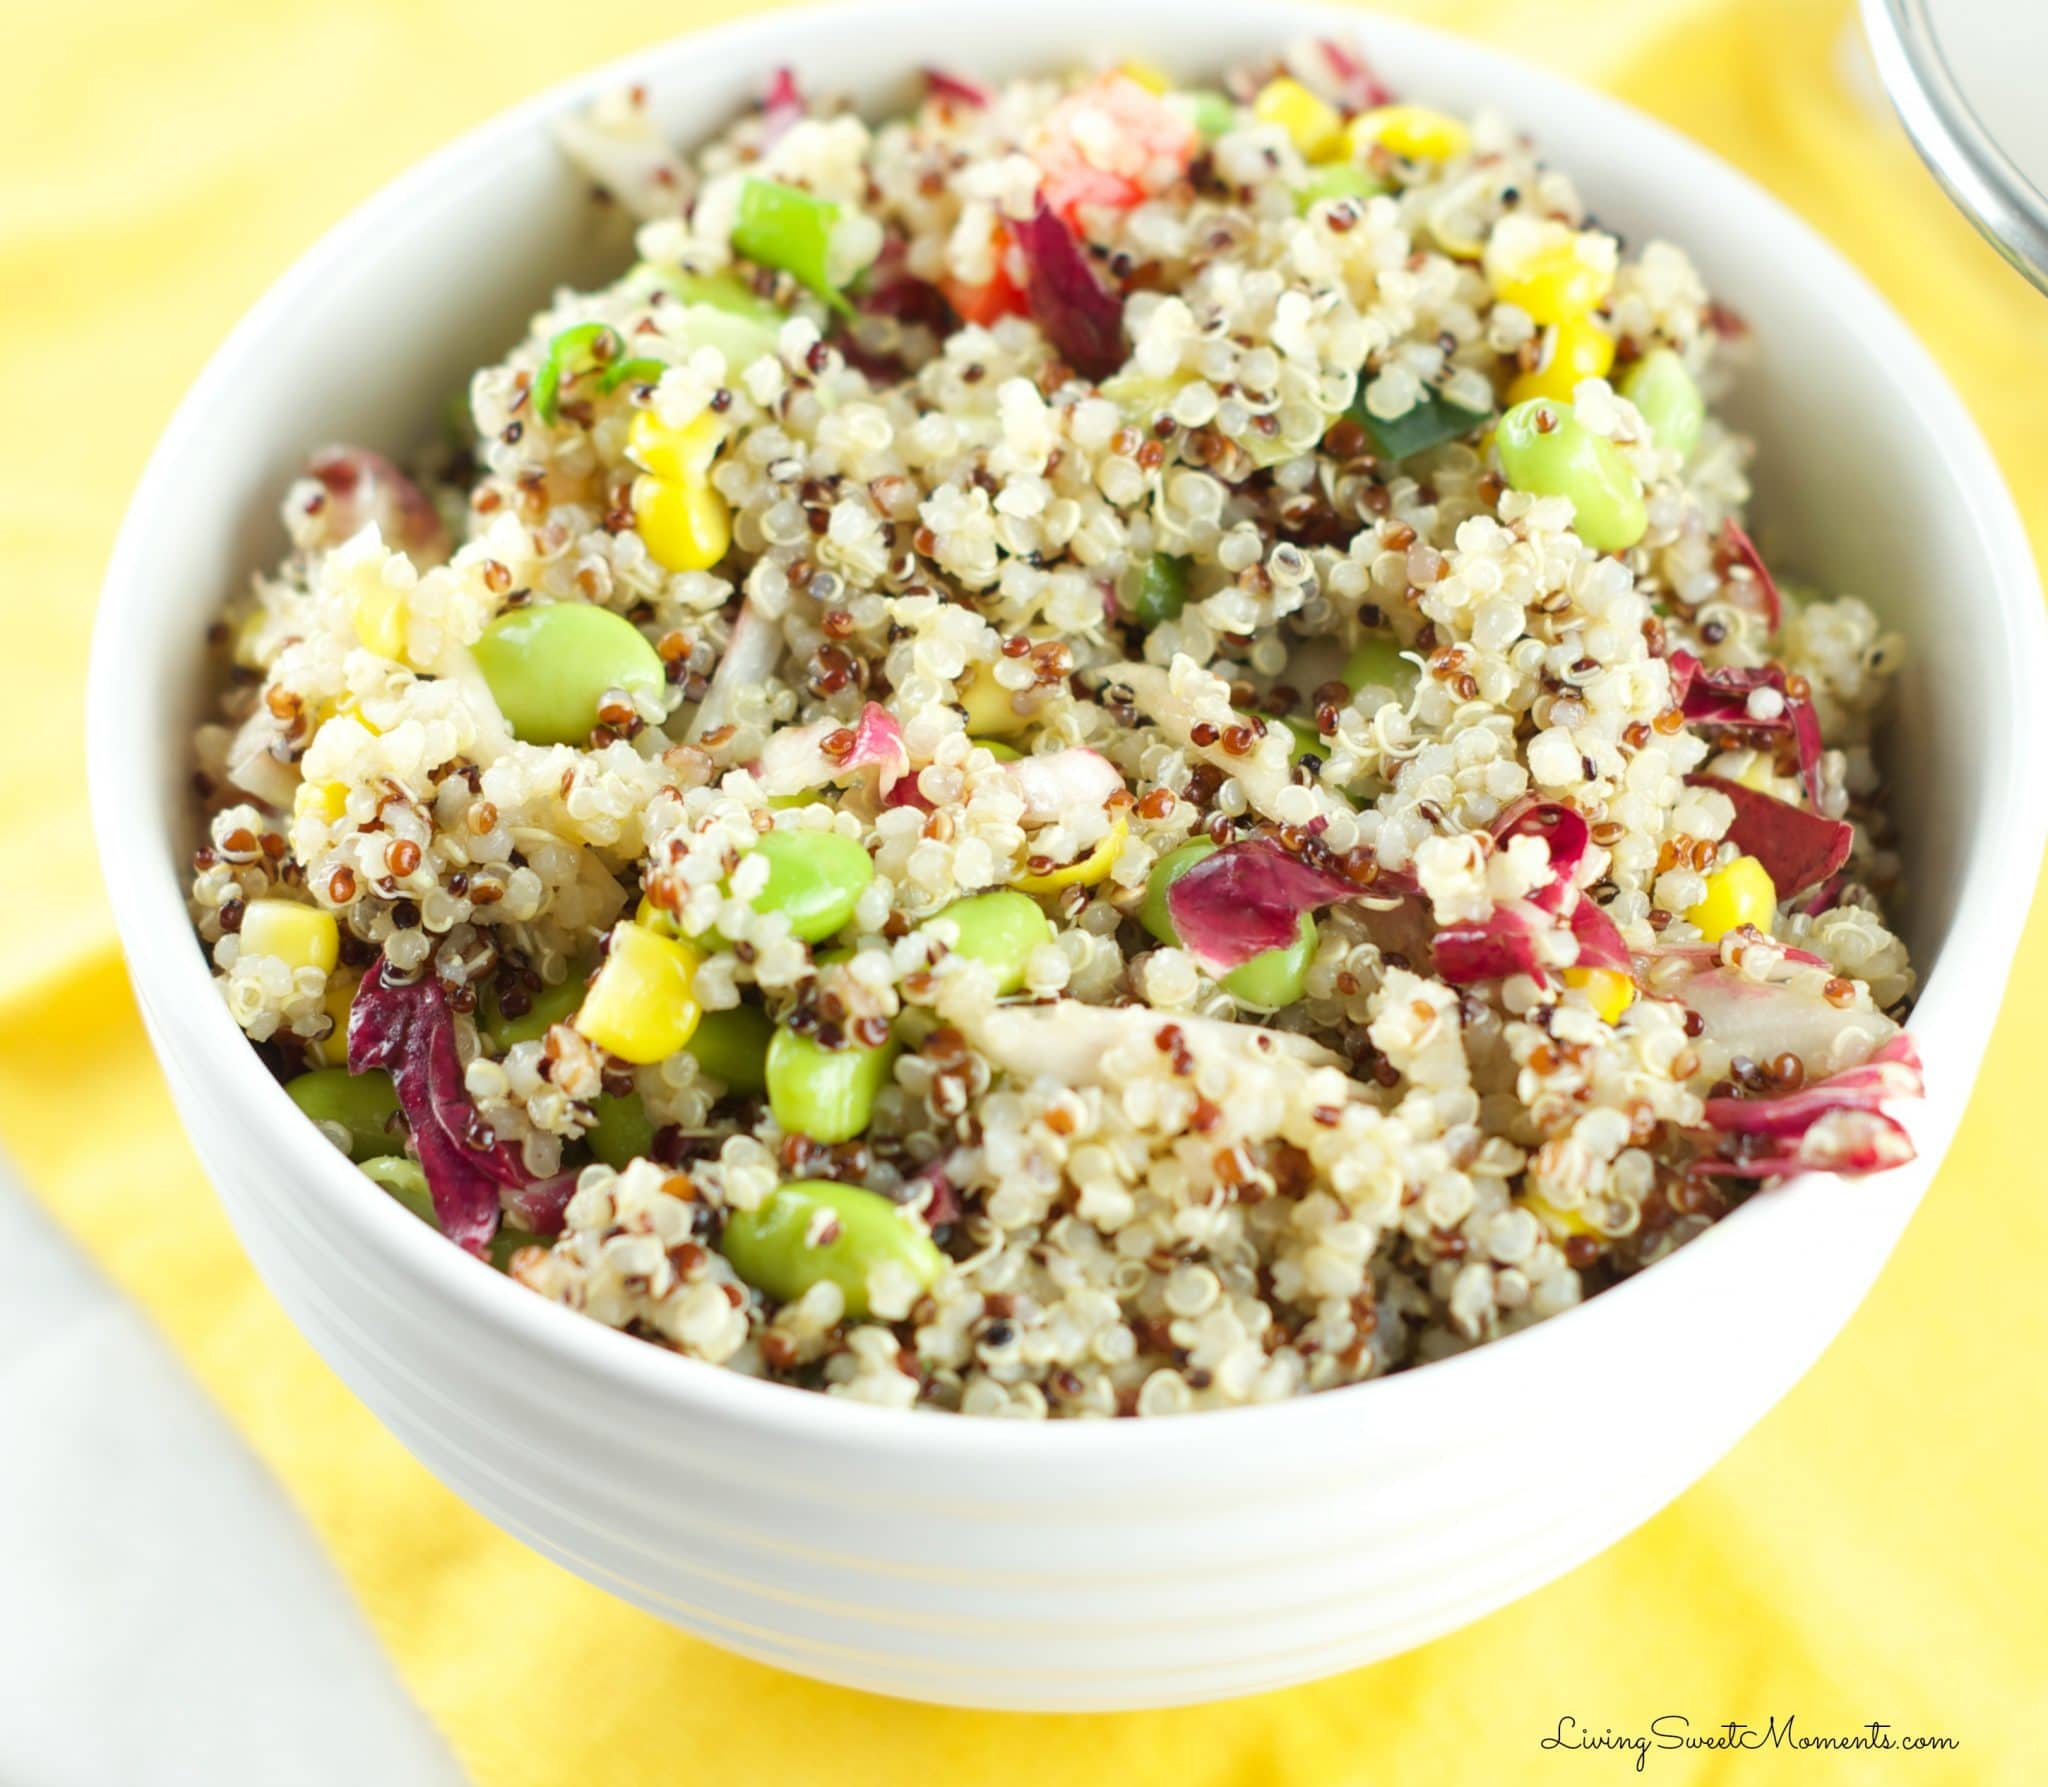 This fresh Quinoa Edamame Salad Recipe is colorful, crunchy and delicious. Served with an Asian-inspired vinaigrette and lots of veggies. Low fat and tasty